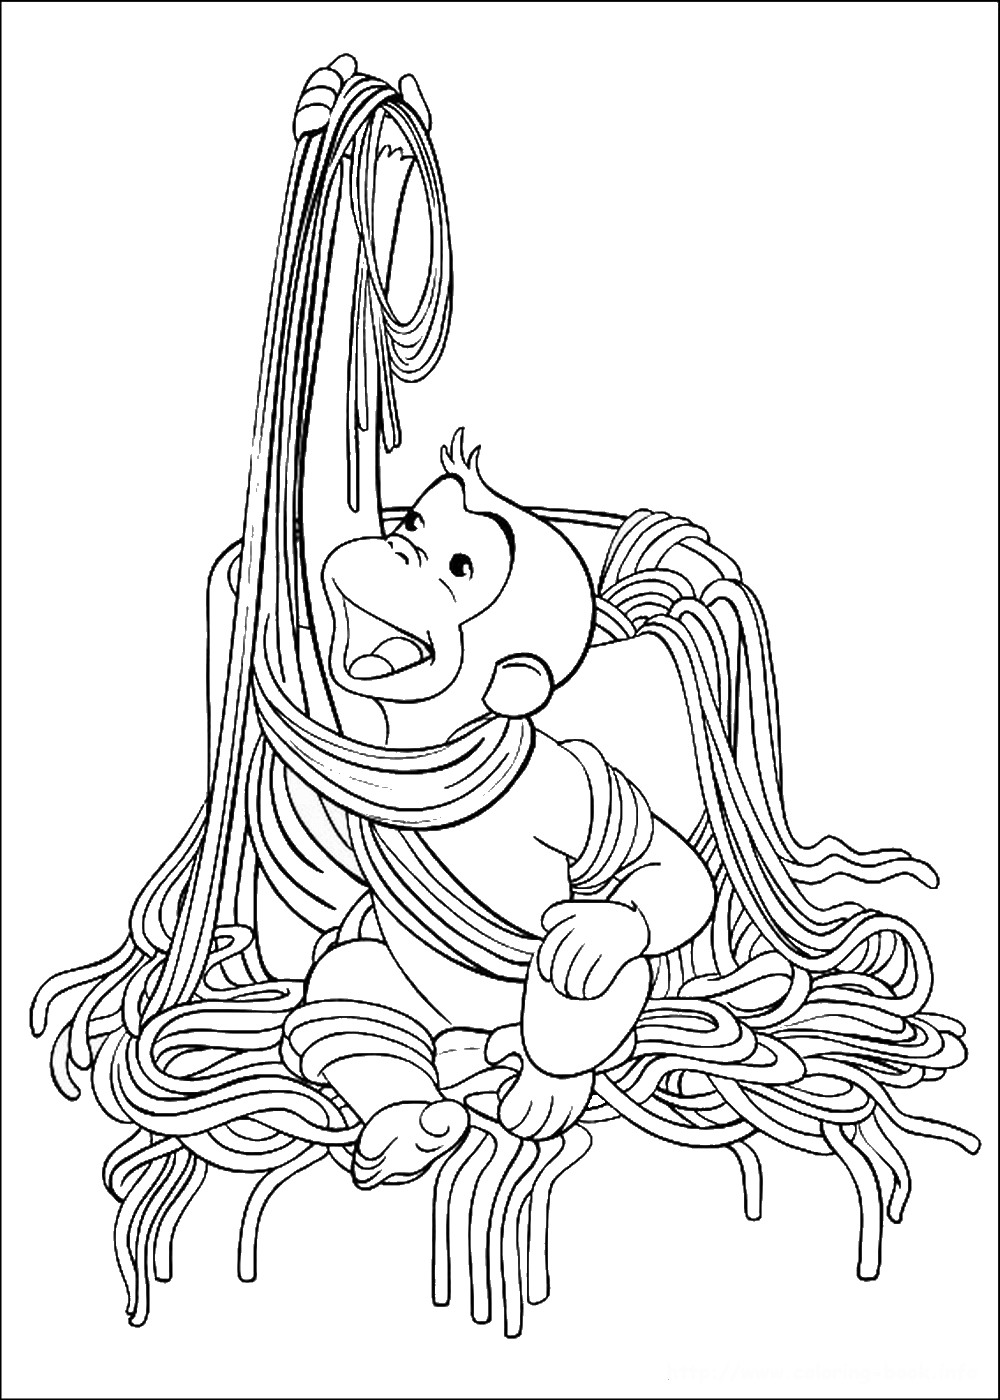 Curious Gee Coloring Pages